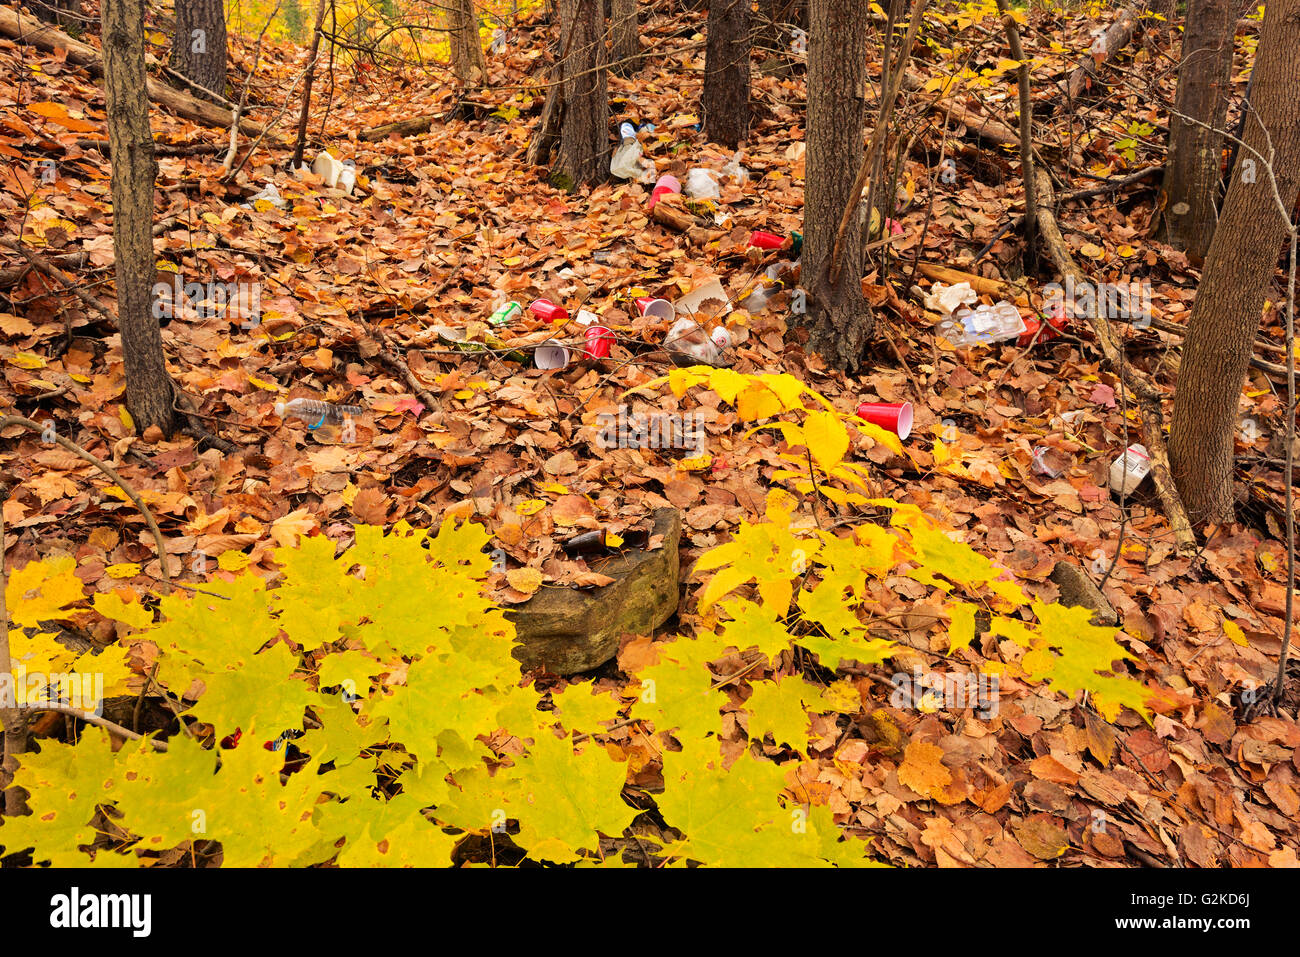 Garbage littering a hardwood forest in autumn Dorset Ontario Canada - Stock Image